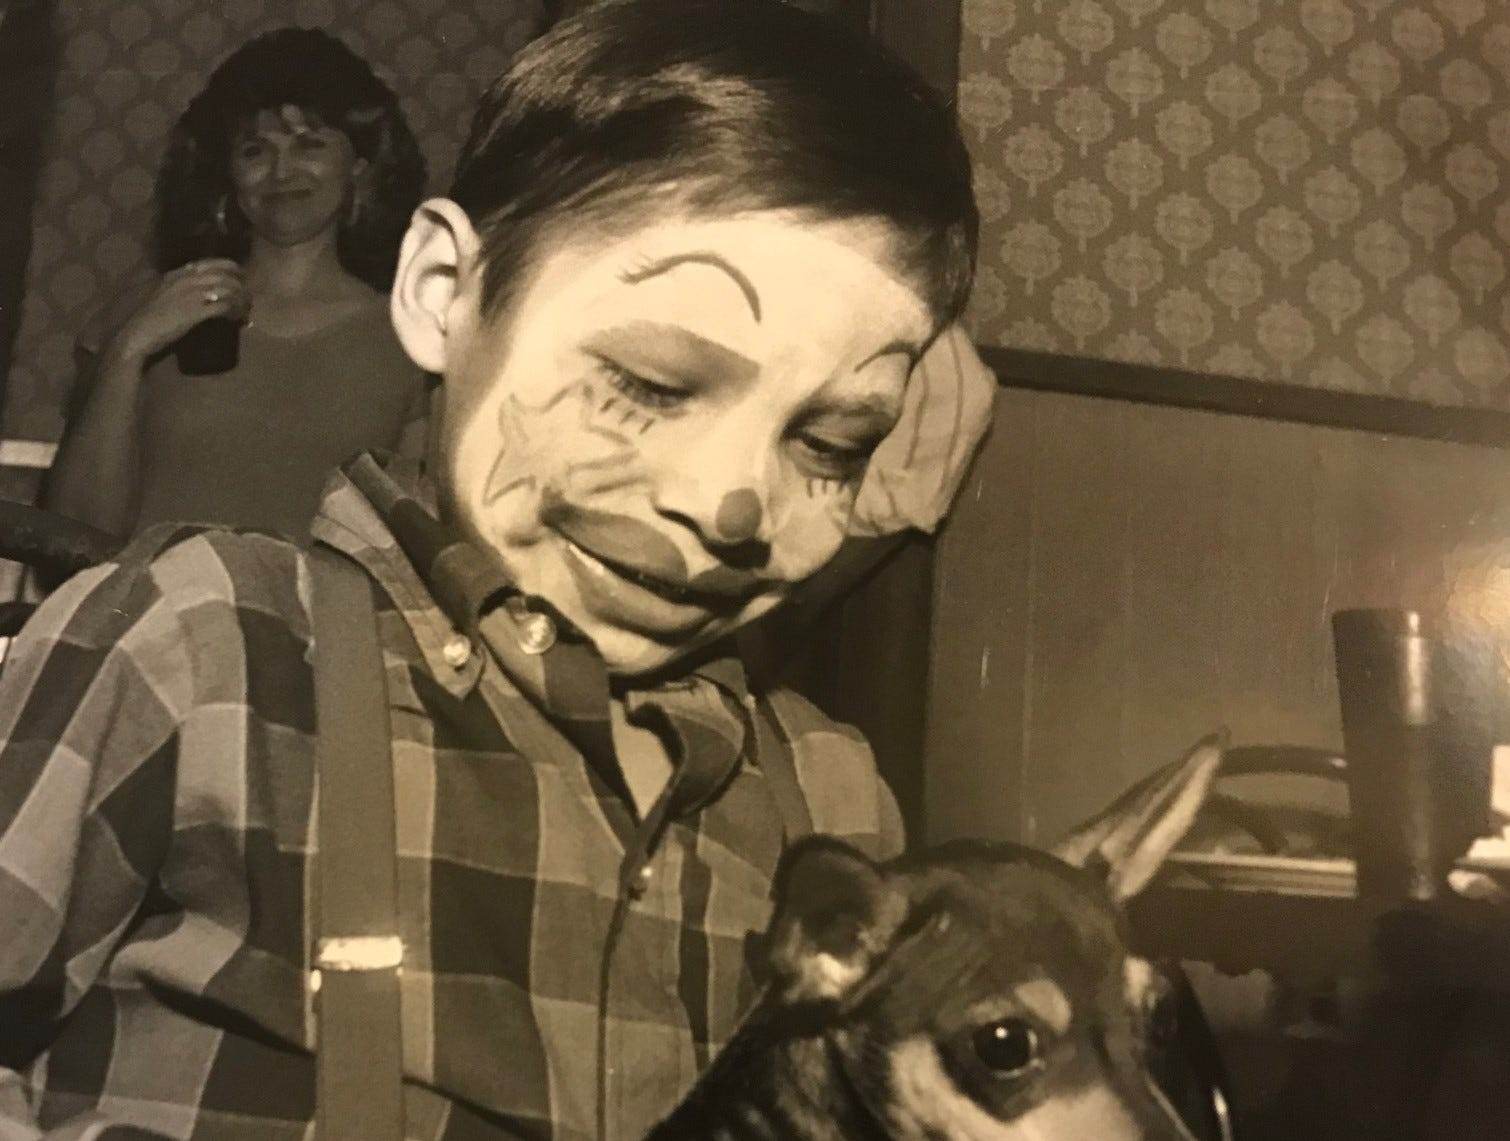 """Christopher Juarez, 6, pets his new Chihuahua puppy, which was presented during a birthday party at Shakey's Pizza in San Angelo in this April 1989 file photo. He named the puppy """"C.J."""""""